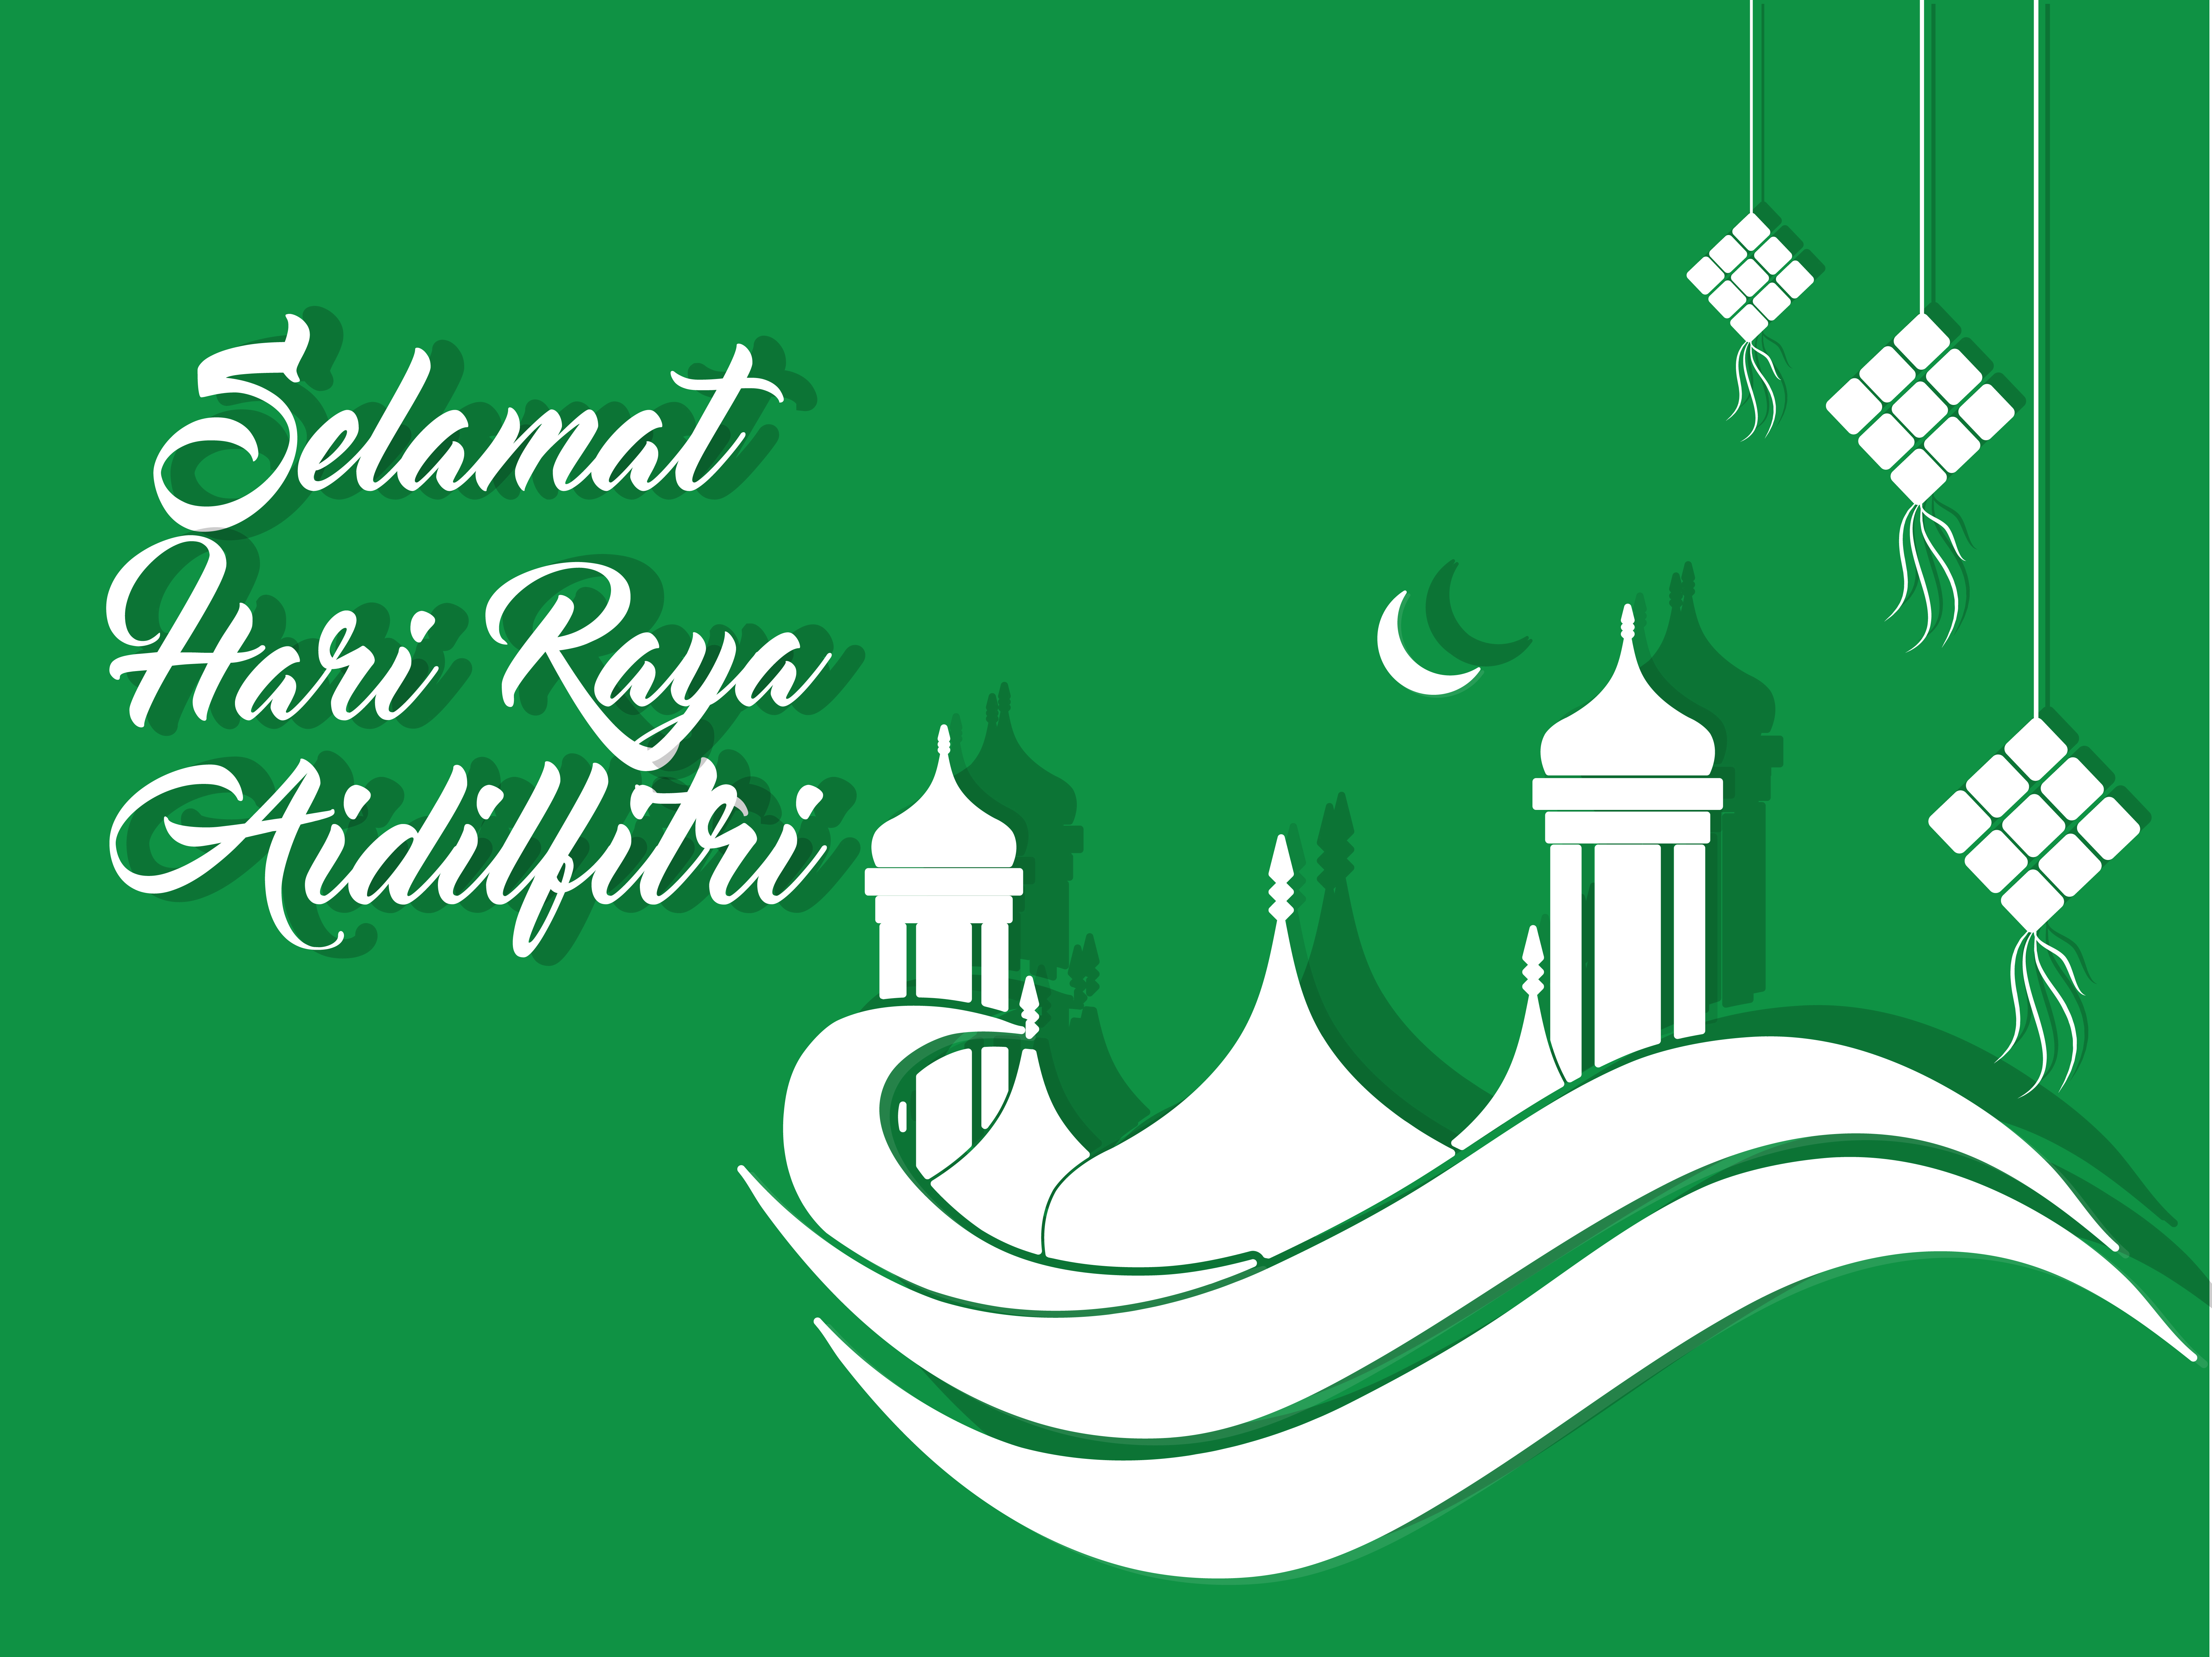 Hari Raya Aidilfitri In 20182019 When Where Why How Is Celebrated